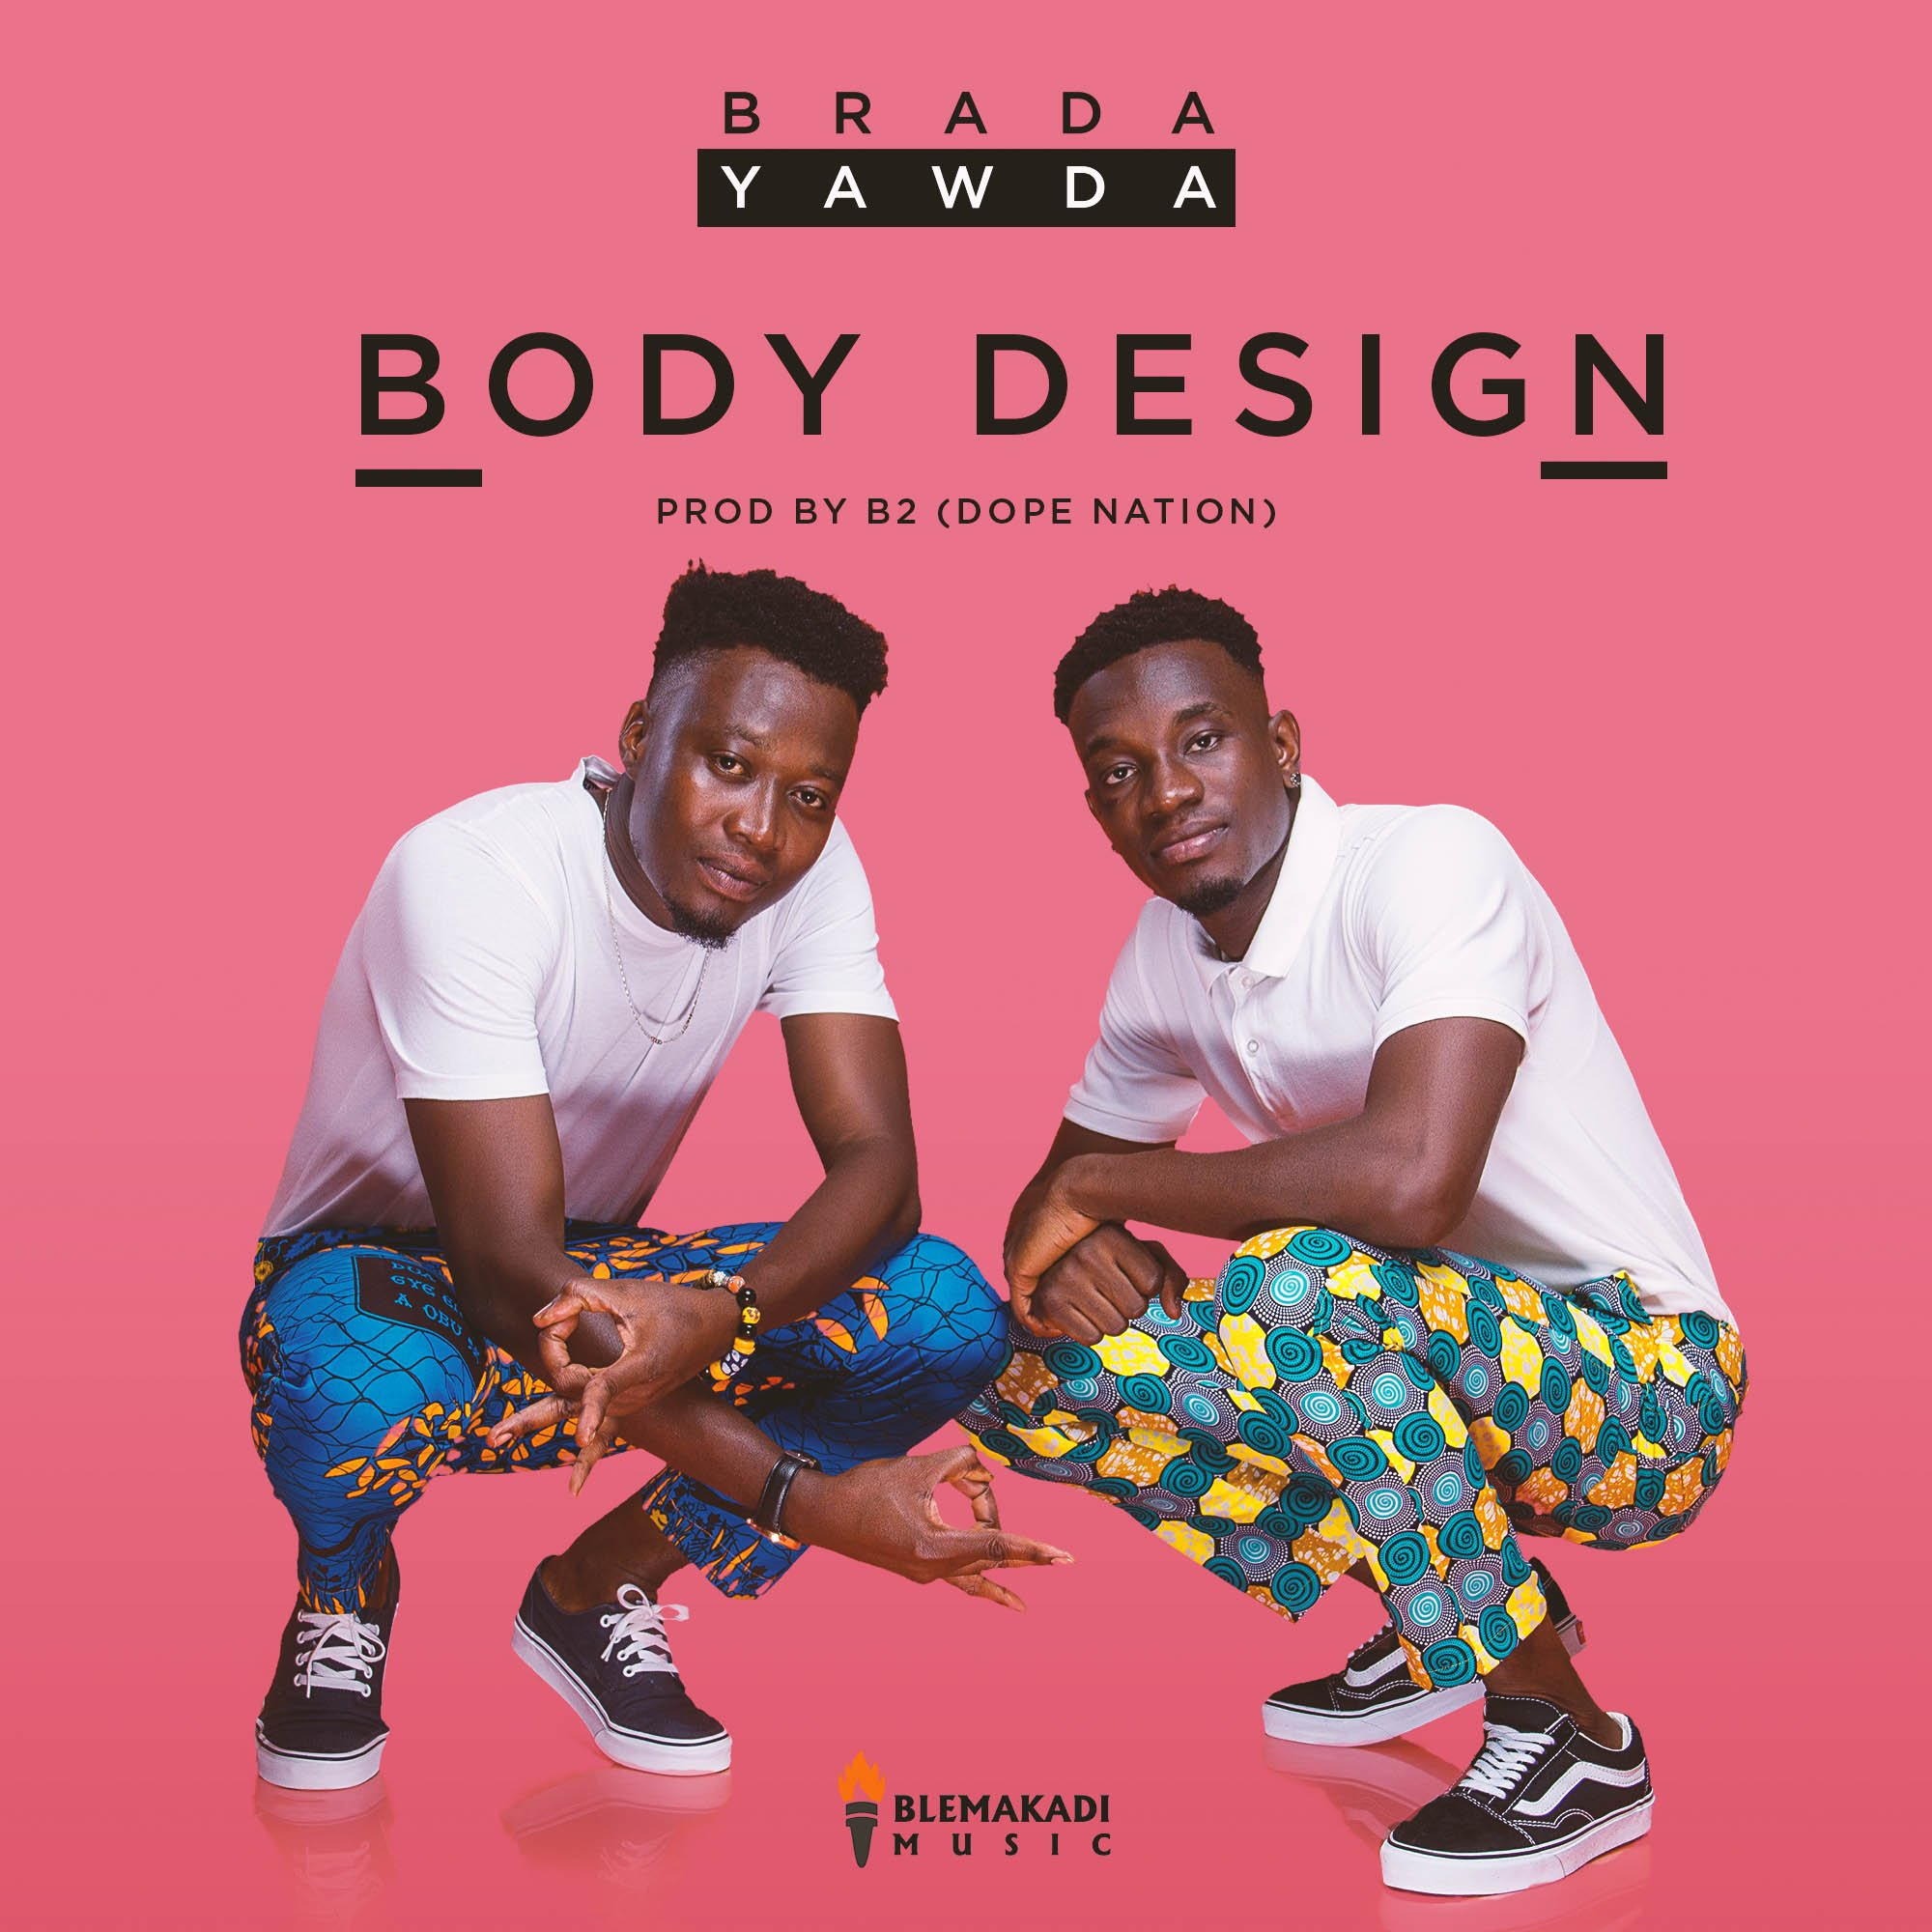 Brada Yawda – Body Design (Prod. By B2)